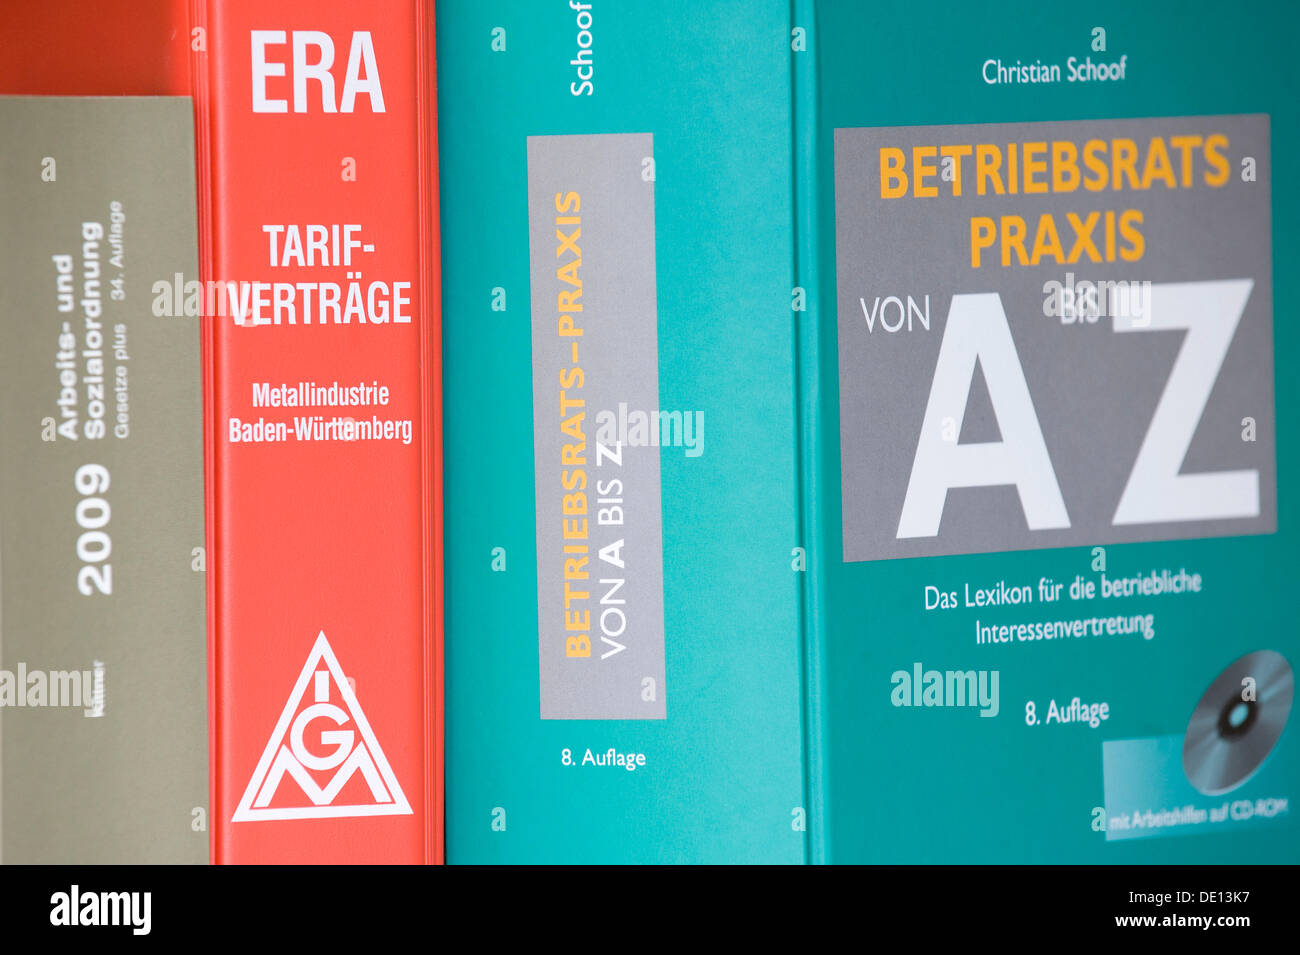 Books, German for labor regulations and social order, collective wage agreements, ERA, employee organization - Stock Image